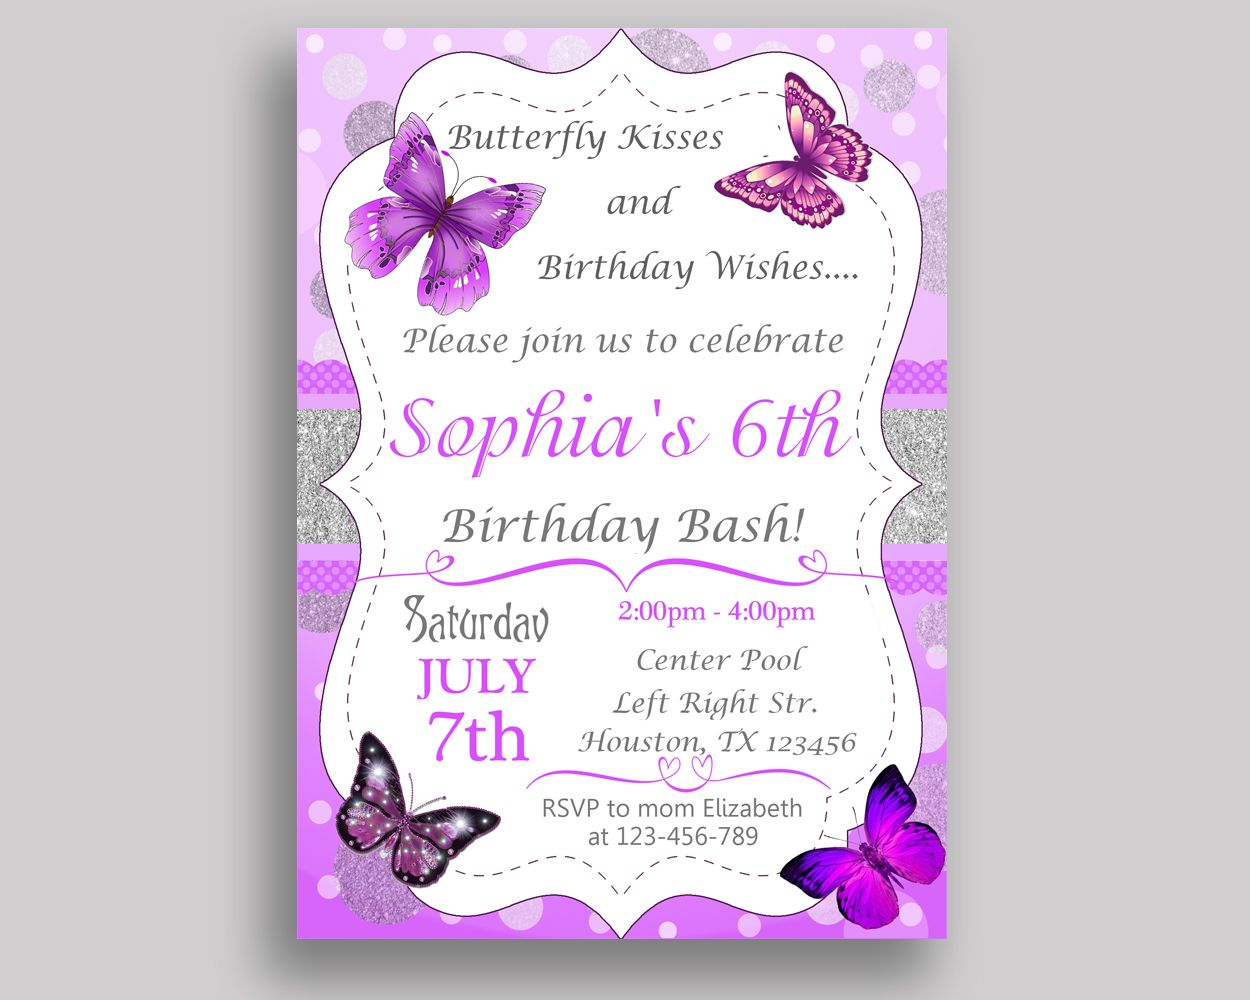 Cute Butterfly Invitations Birthday Images - Invitation Card Ideas ...